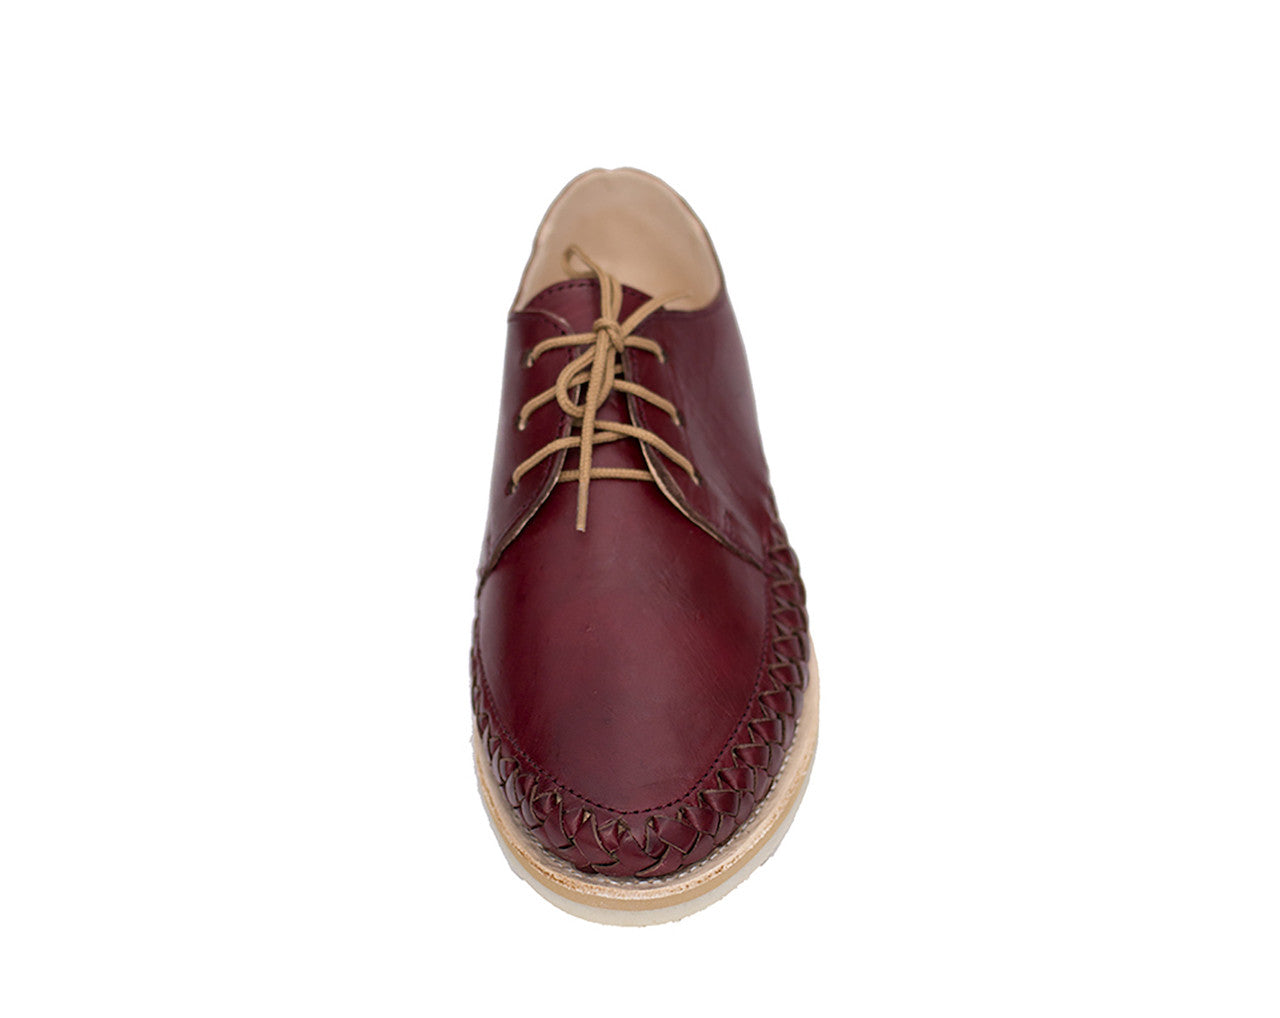 Casual Leather Shoes - Sayulita for Men and Women in Bordeaux by Tapatía on Jetset Times SHOP